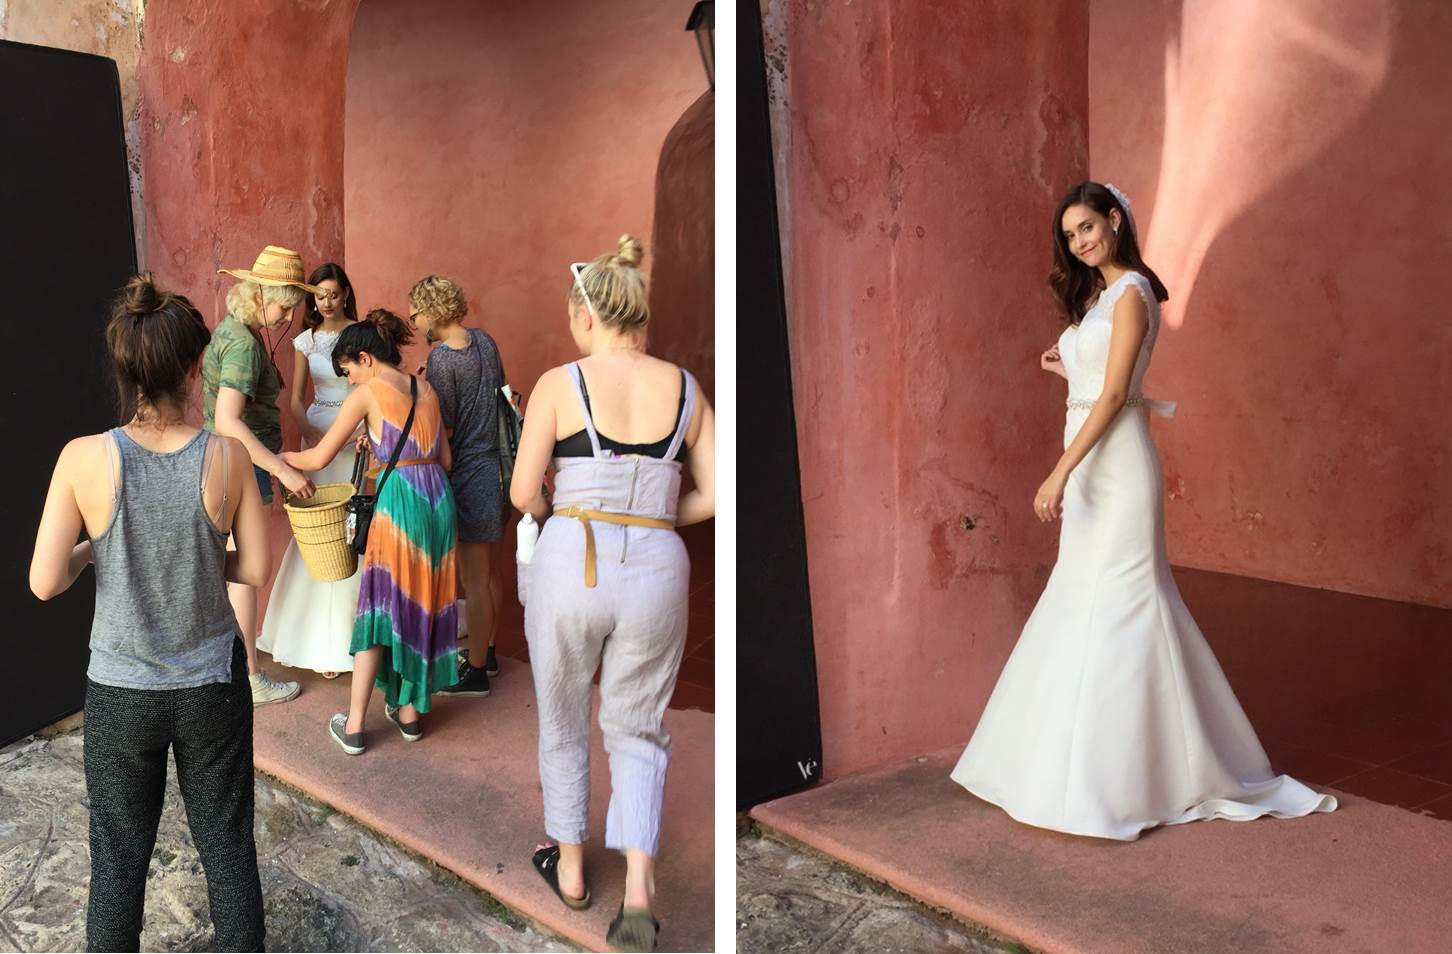 Behind-the-scenes at the Fall 2017 David's Bridal Collection photo shoot featuring a classic satin and illusion lace mermaid wedding dress. See more on the David's Bridal blog - www.davidsbridal.com/blog